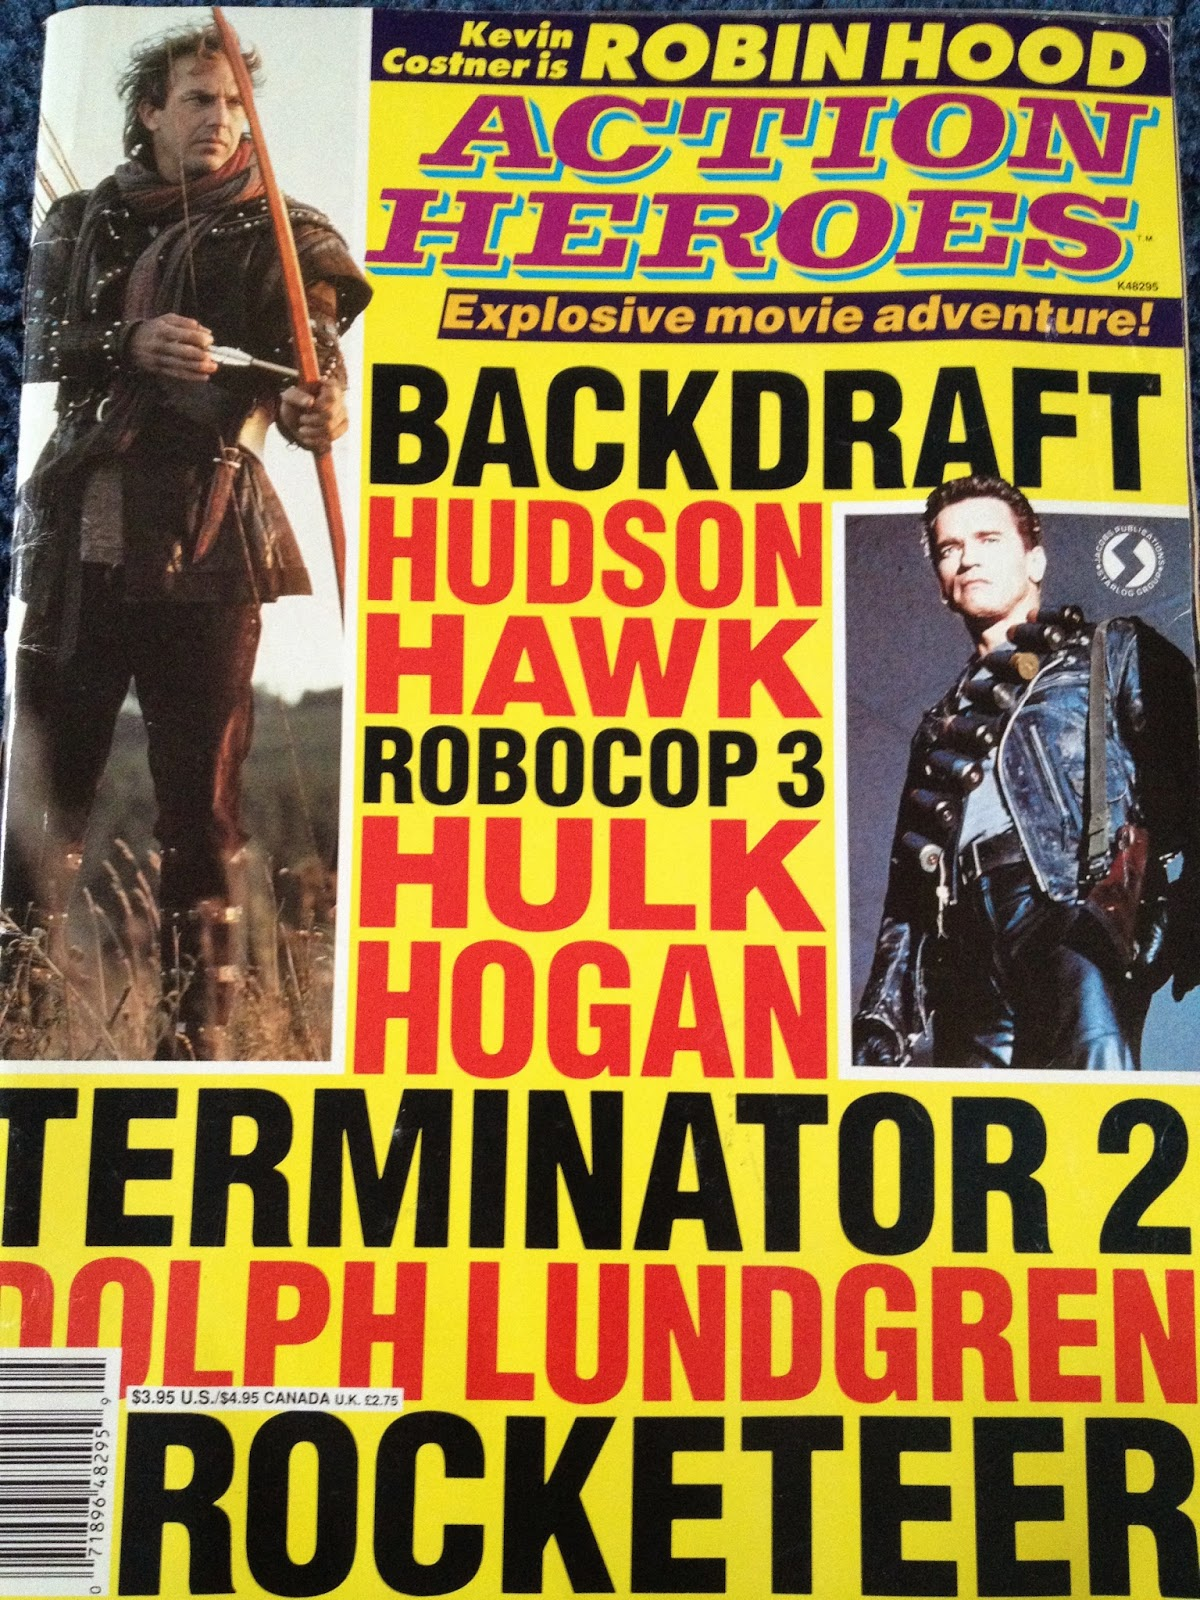 Early 90s Action Heroes